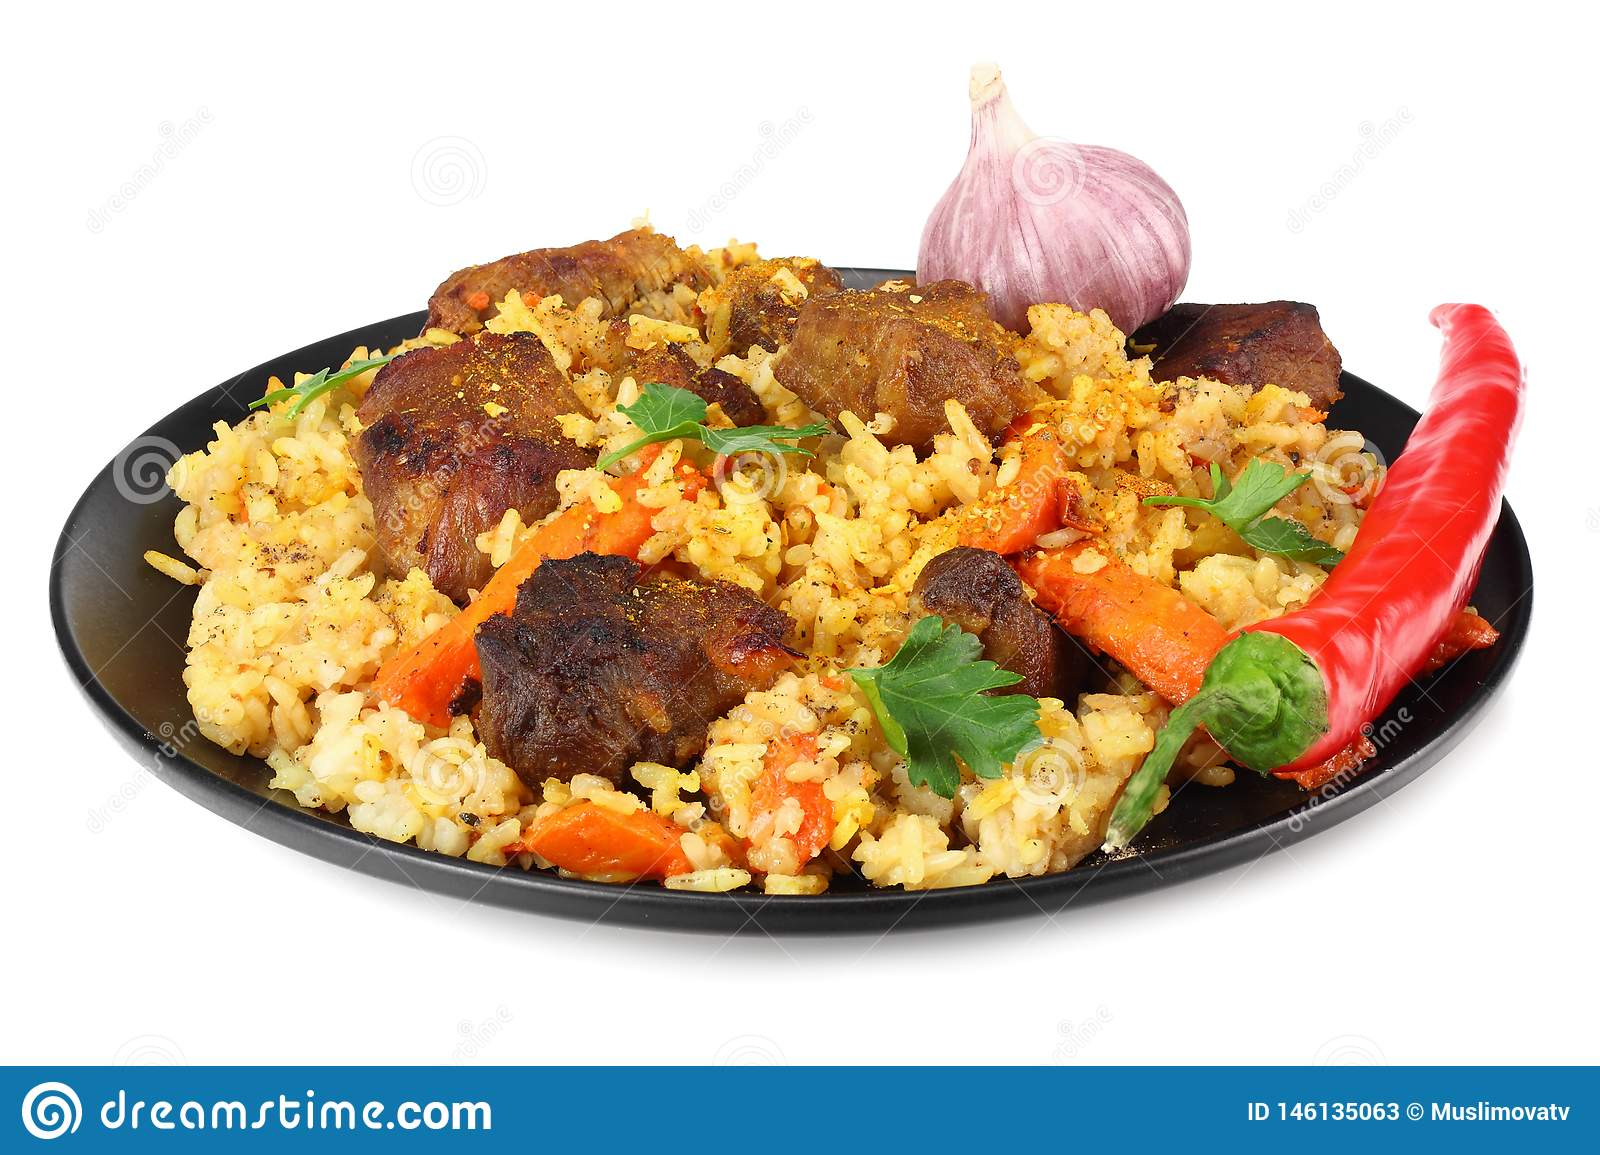 pilaf with meat and chili pepper on black plate isolated on white background